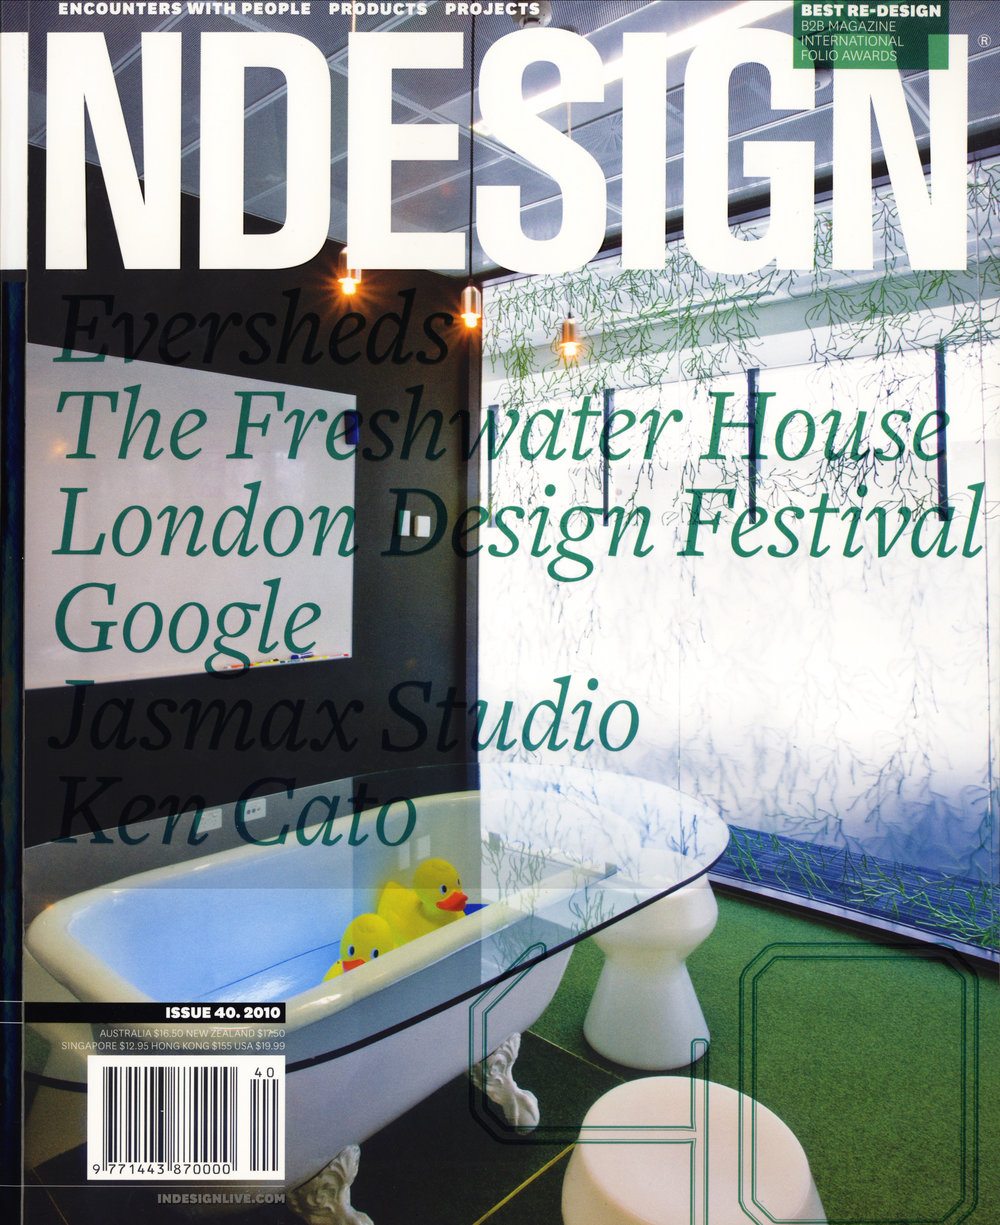 BC-INDESIGN-ISSUE 40.jpg